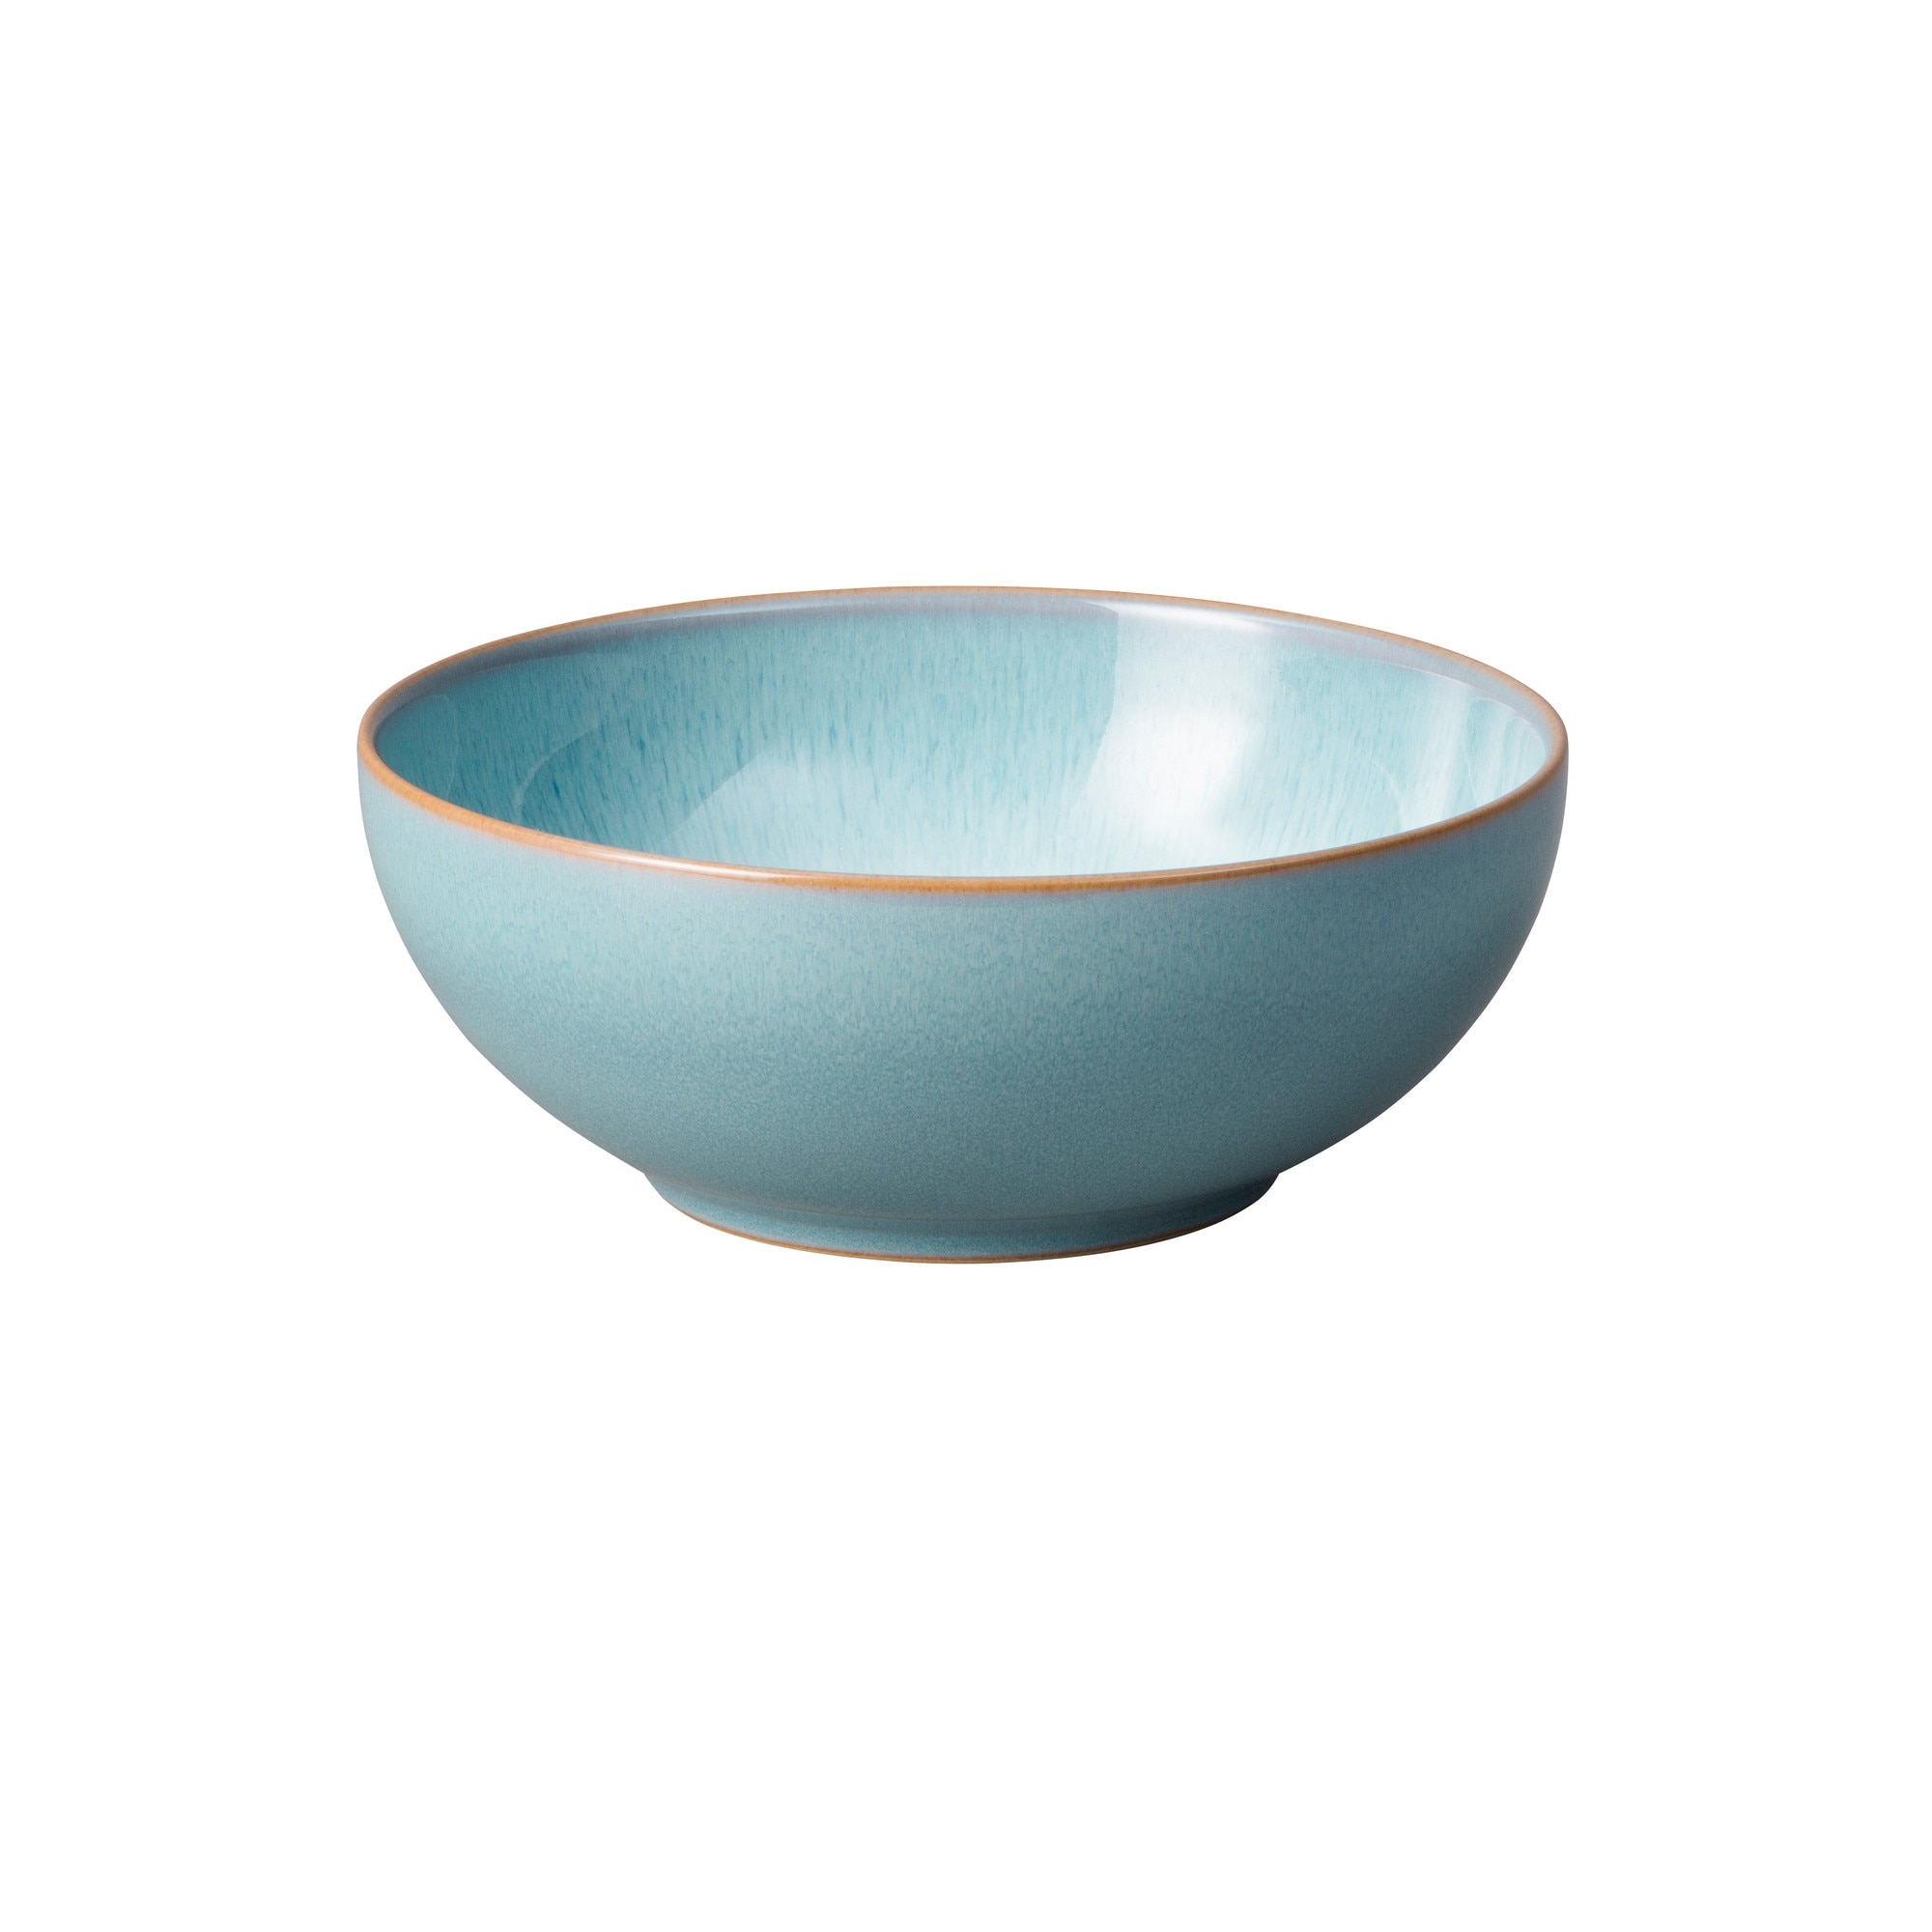 Compare prices for Azure Haze Coupe Cereal Bowl